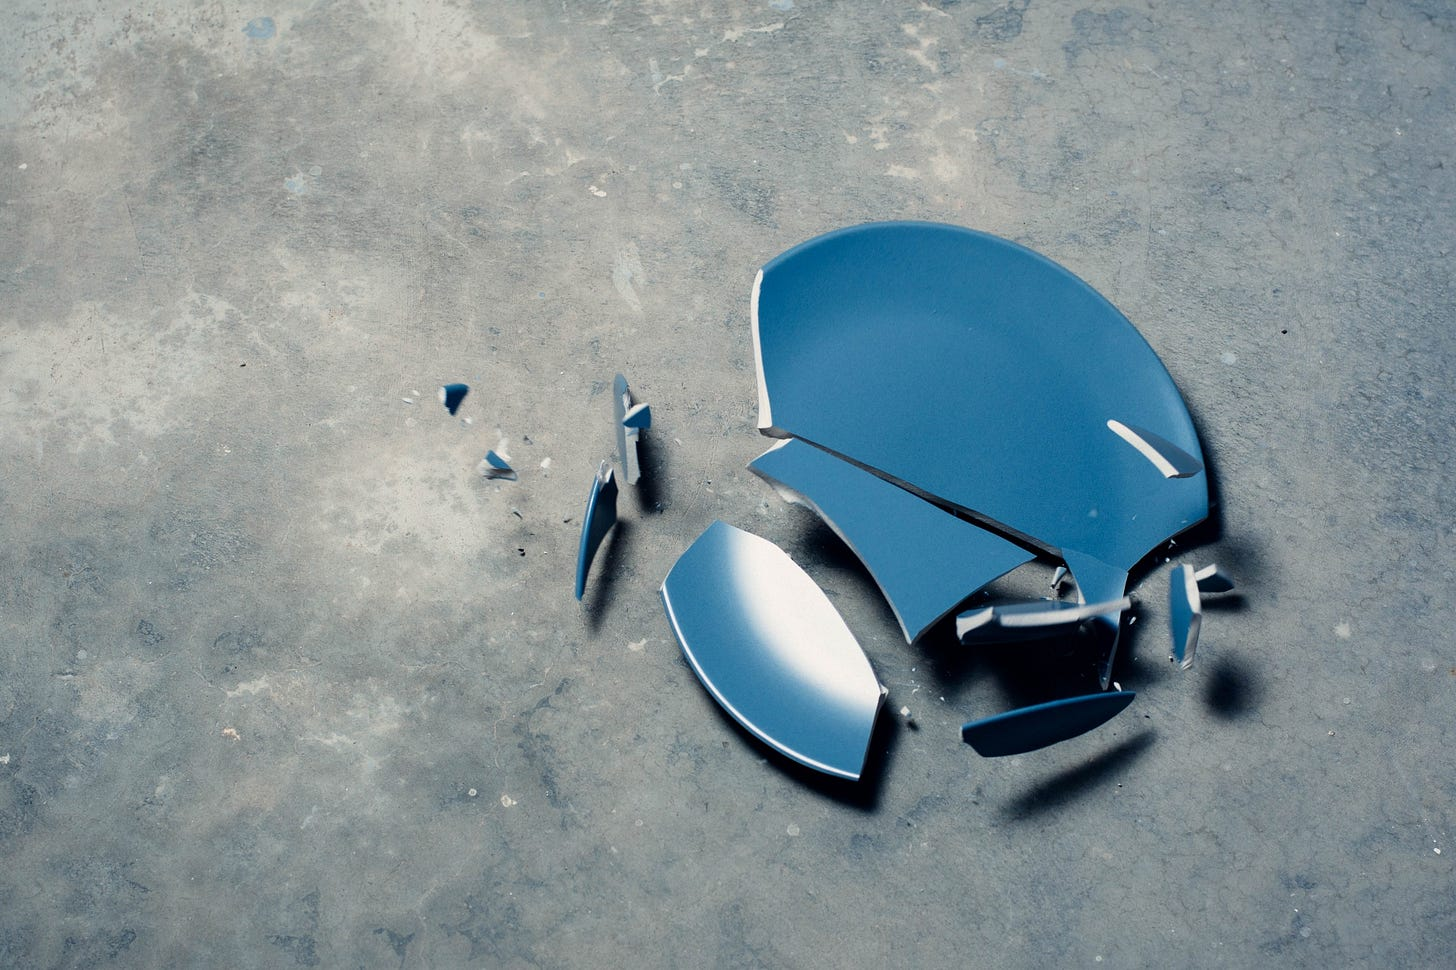 """Image of a blue plate smashed on the floor for article titled """"What If You Can't Fix Yourself"""" on The Reflectionist"""